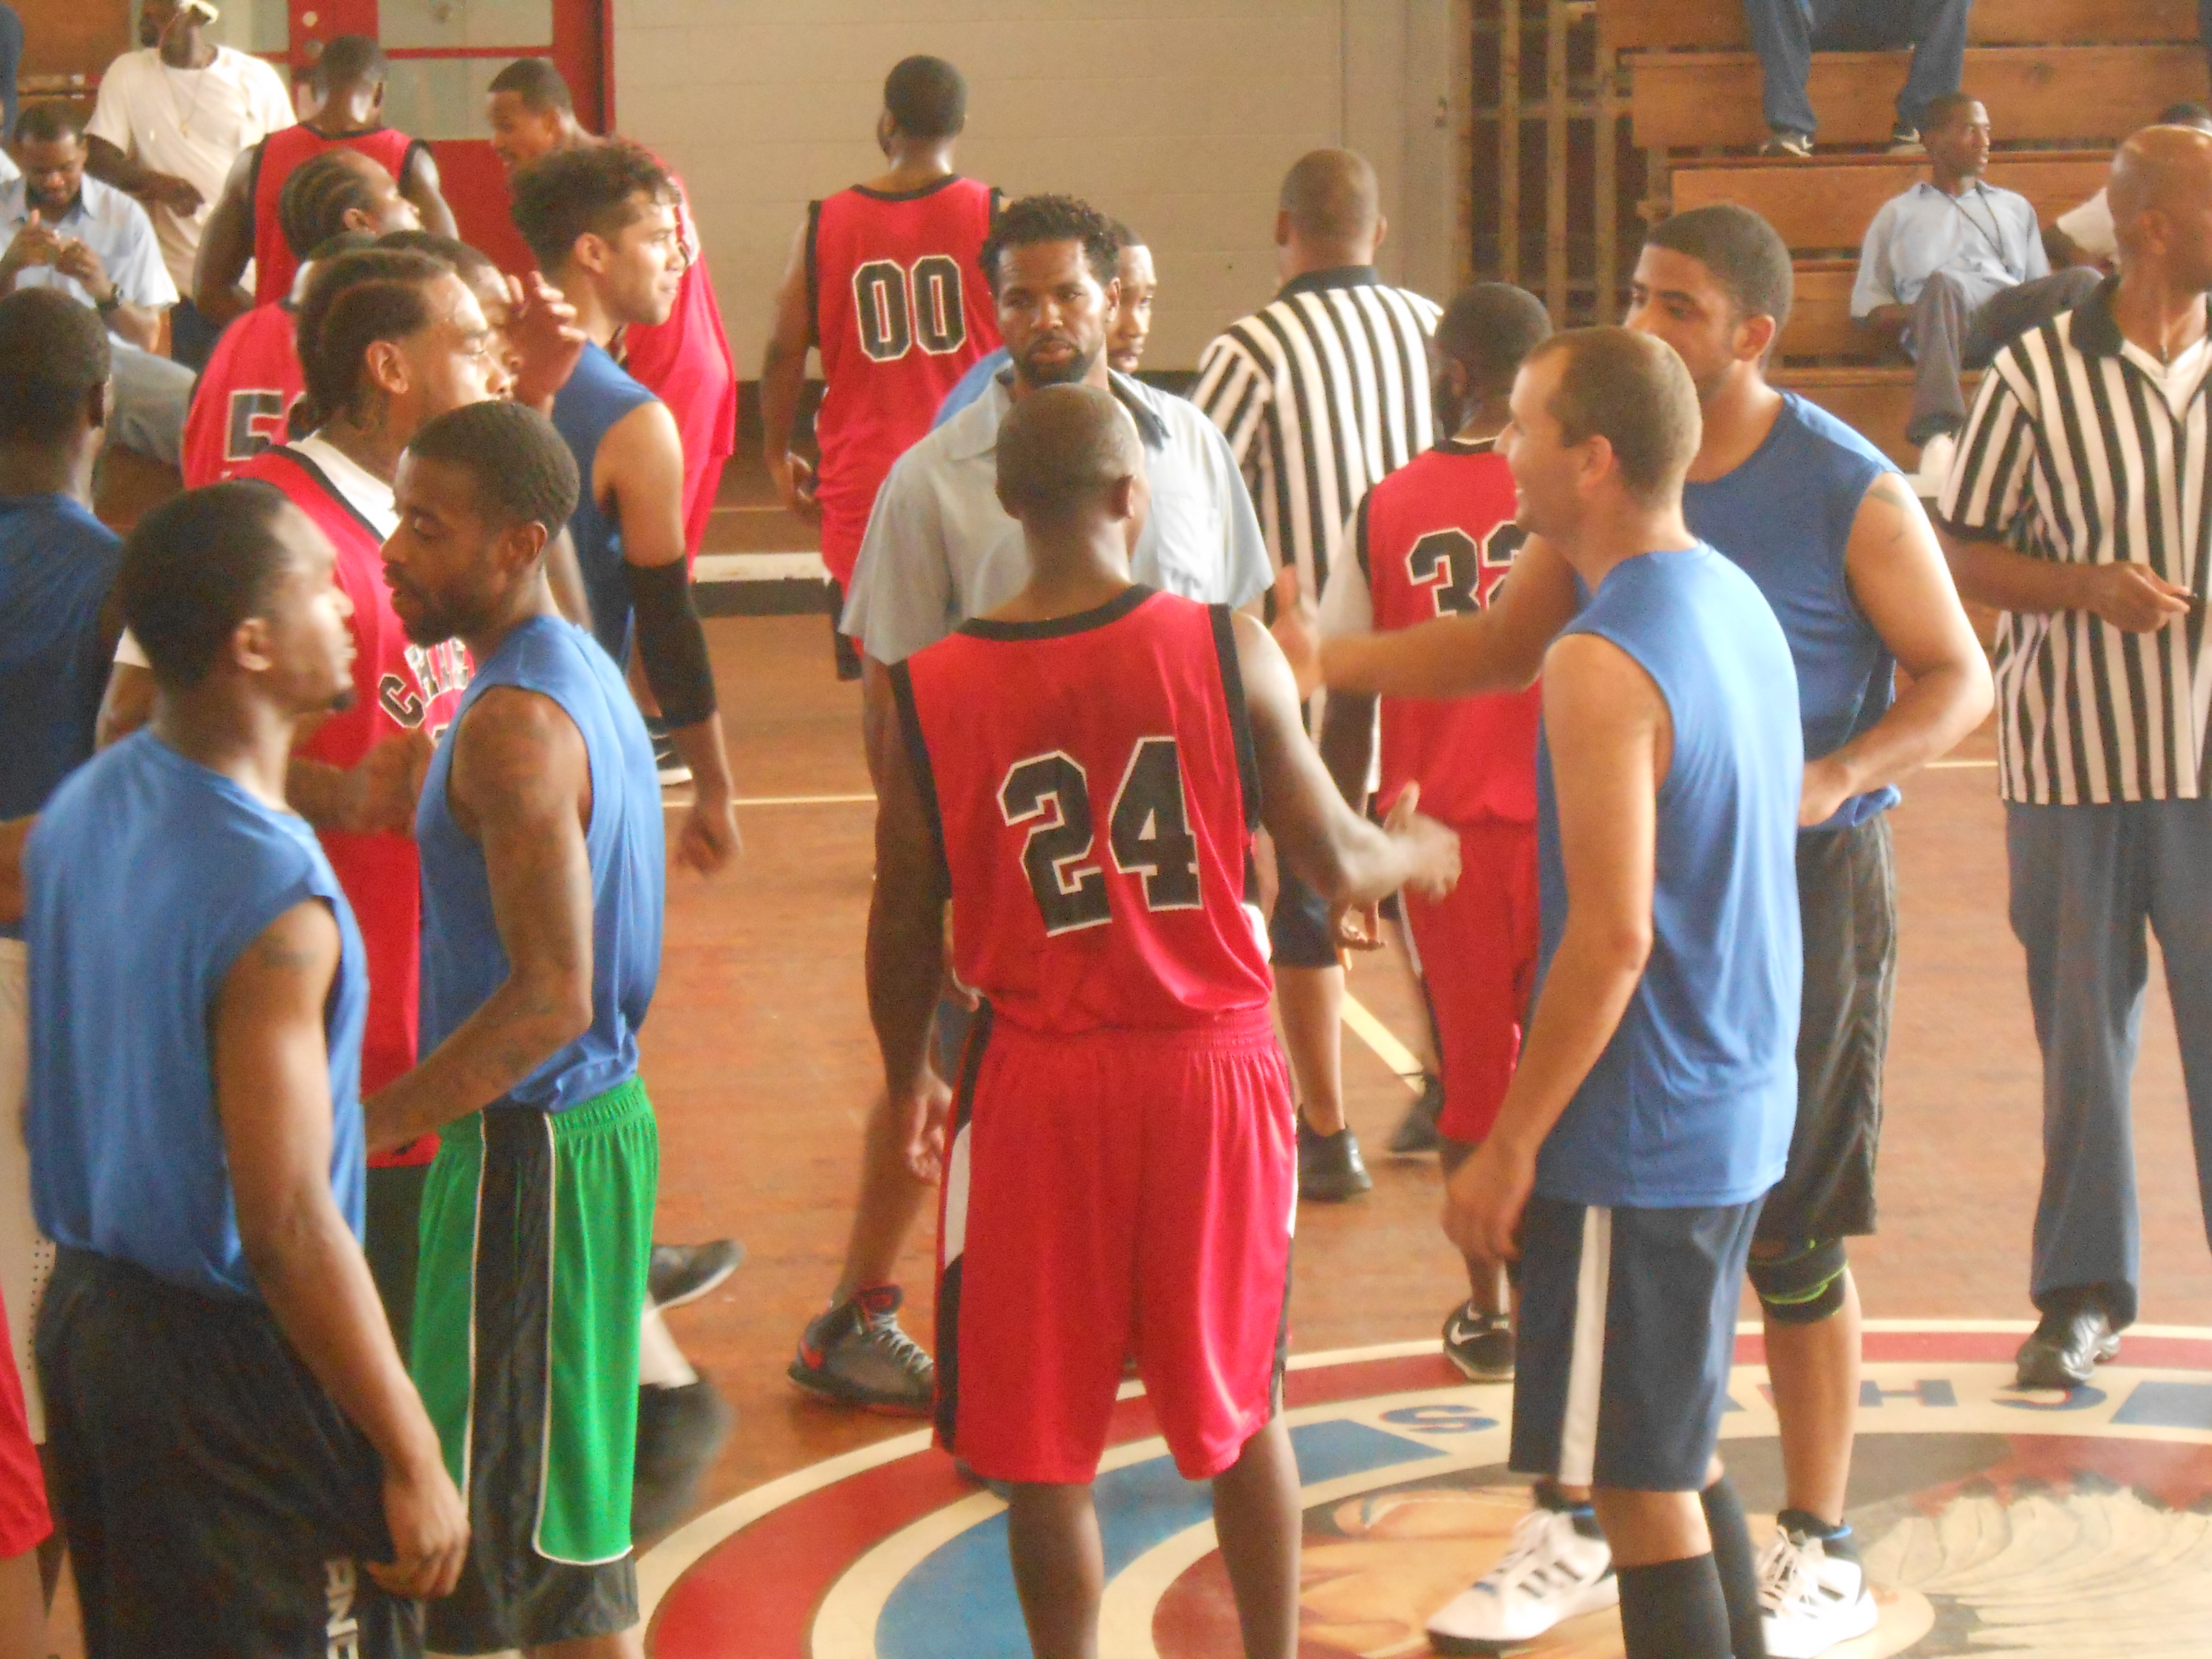 Lebanon Correctional Institution : Basketball Game with Paul Graham